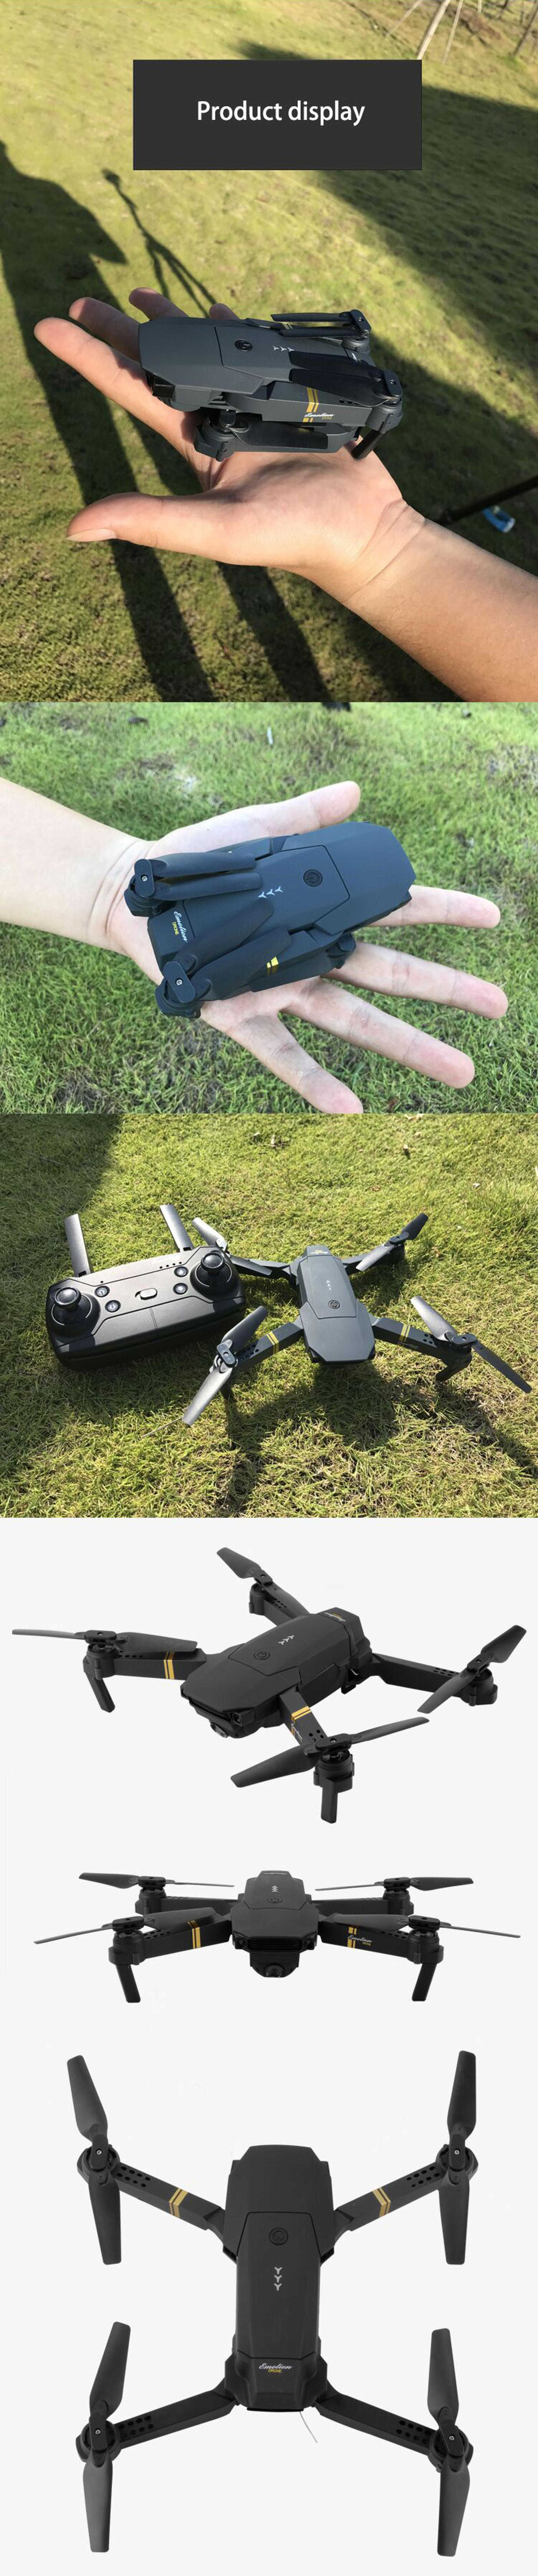 JY019 Pocket Drone WIFI FPV With 2MP Wide Angle Camera High Hold Mode Foldable SJY-JY019 Drone